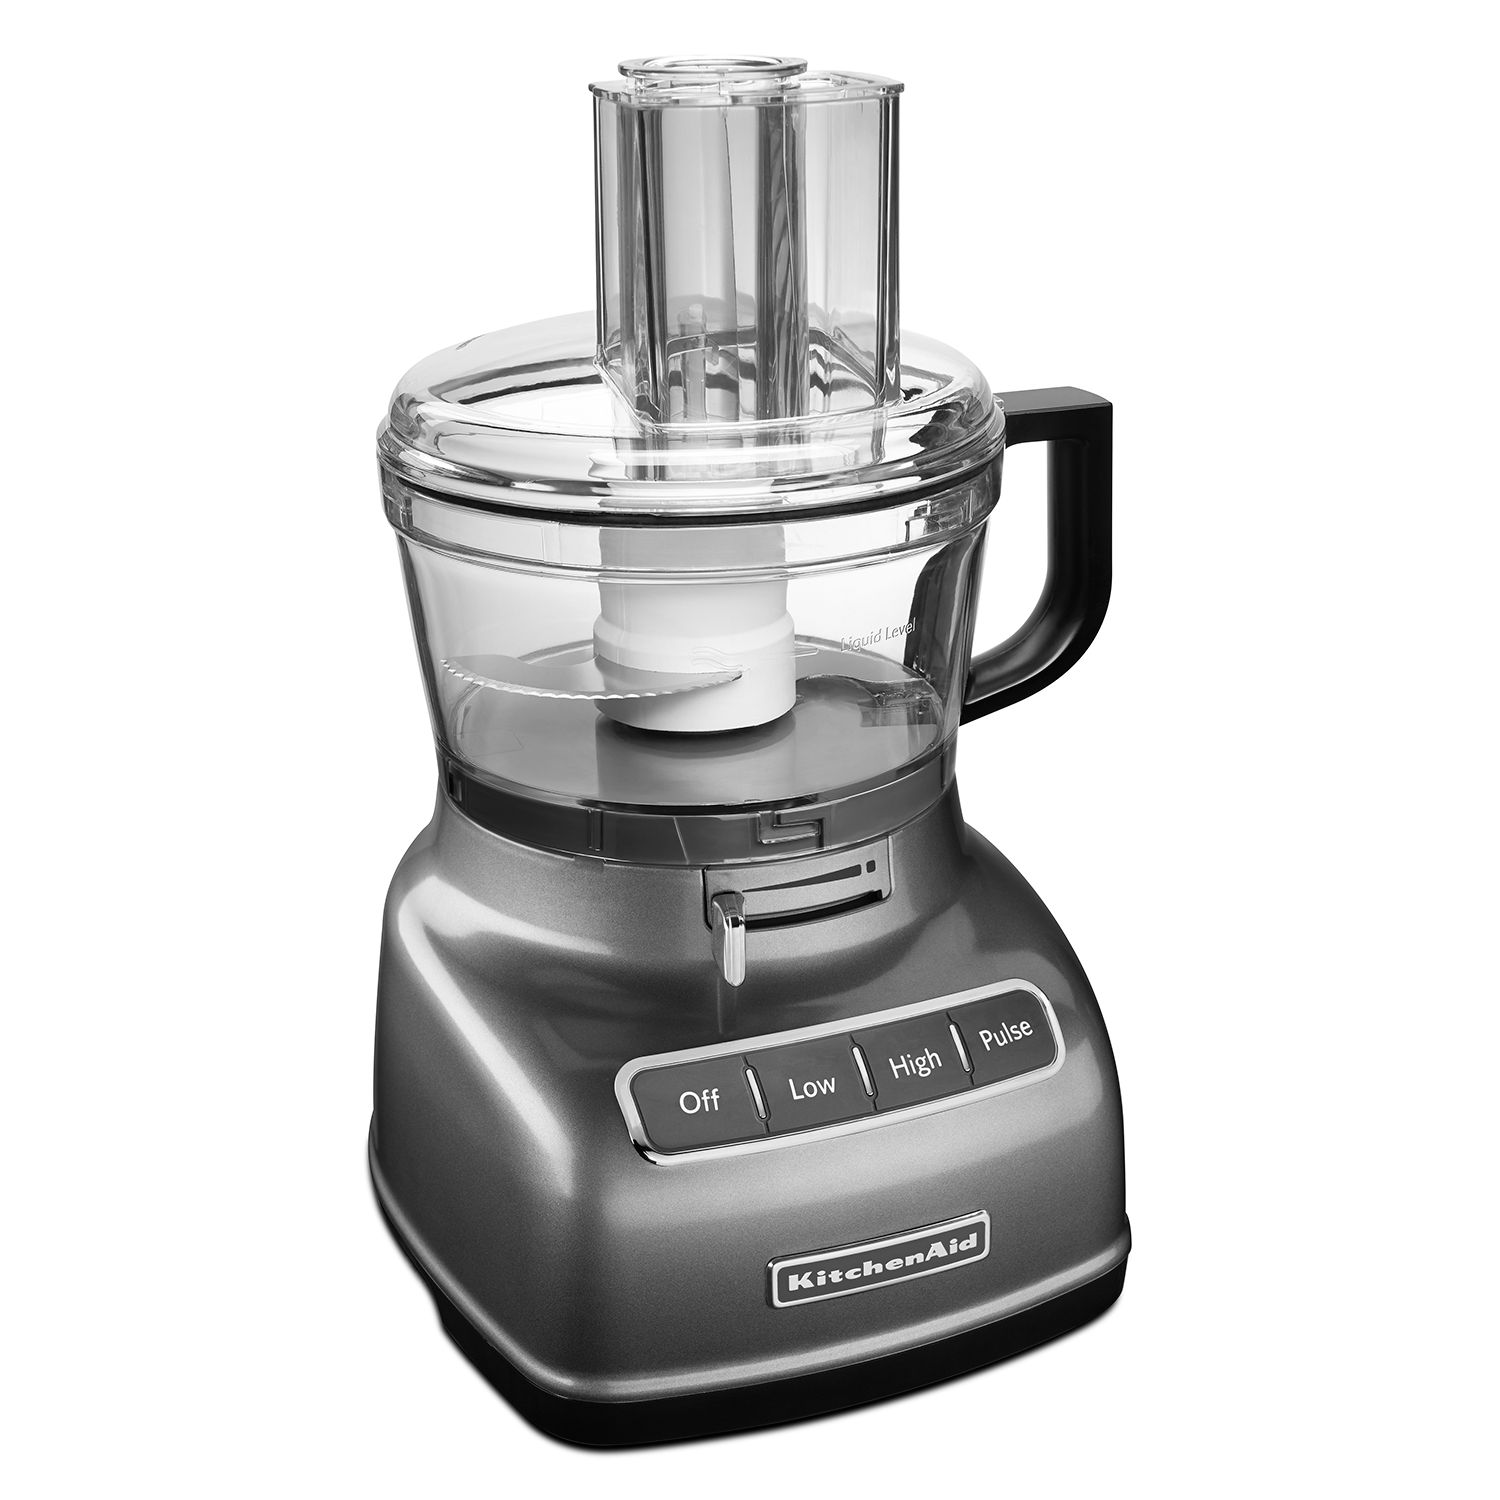 KitchenAid Exact Slice System Wide Large 7 Cup Stainless Steel Food Processor